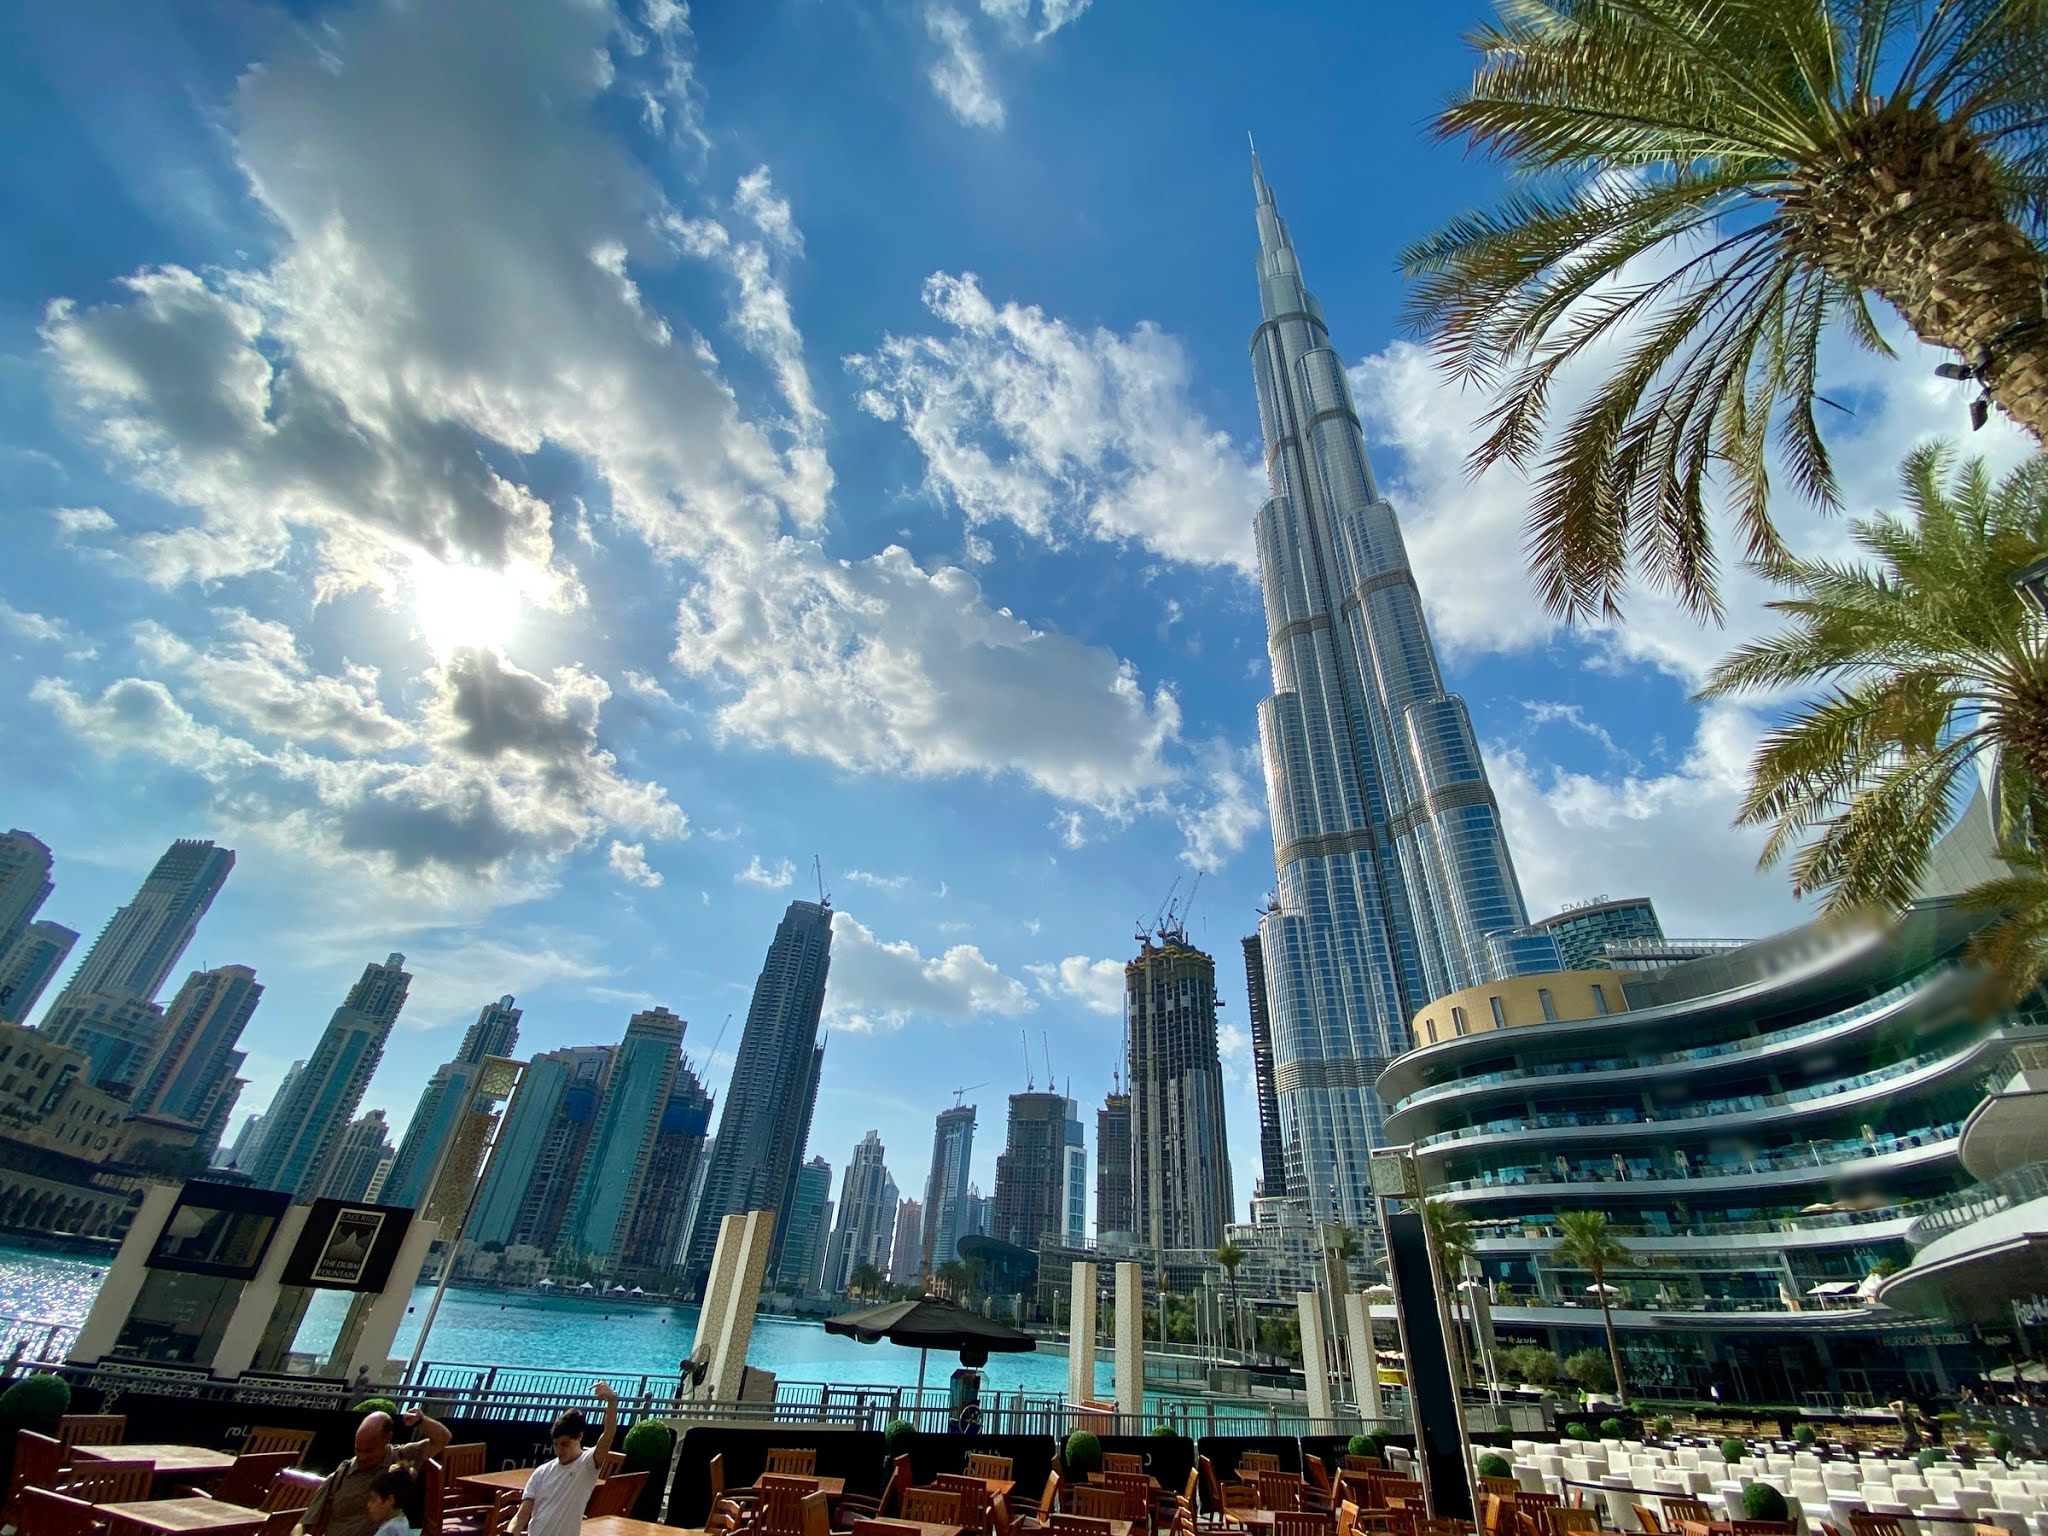 Dubai rated among the most safest cities in the world effectively managing the global COVID-19 crisis